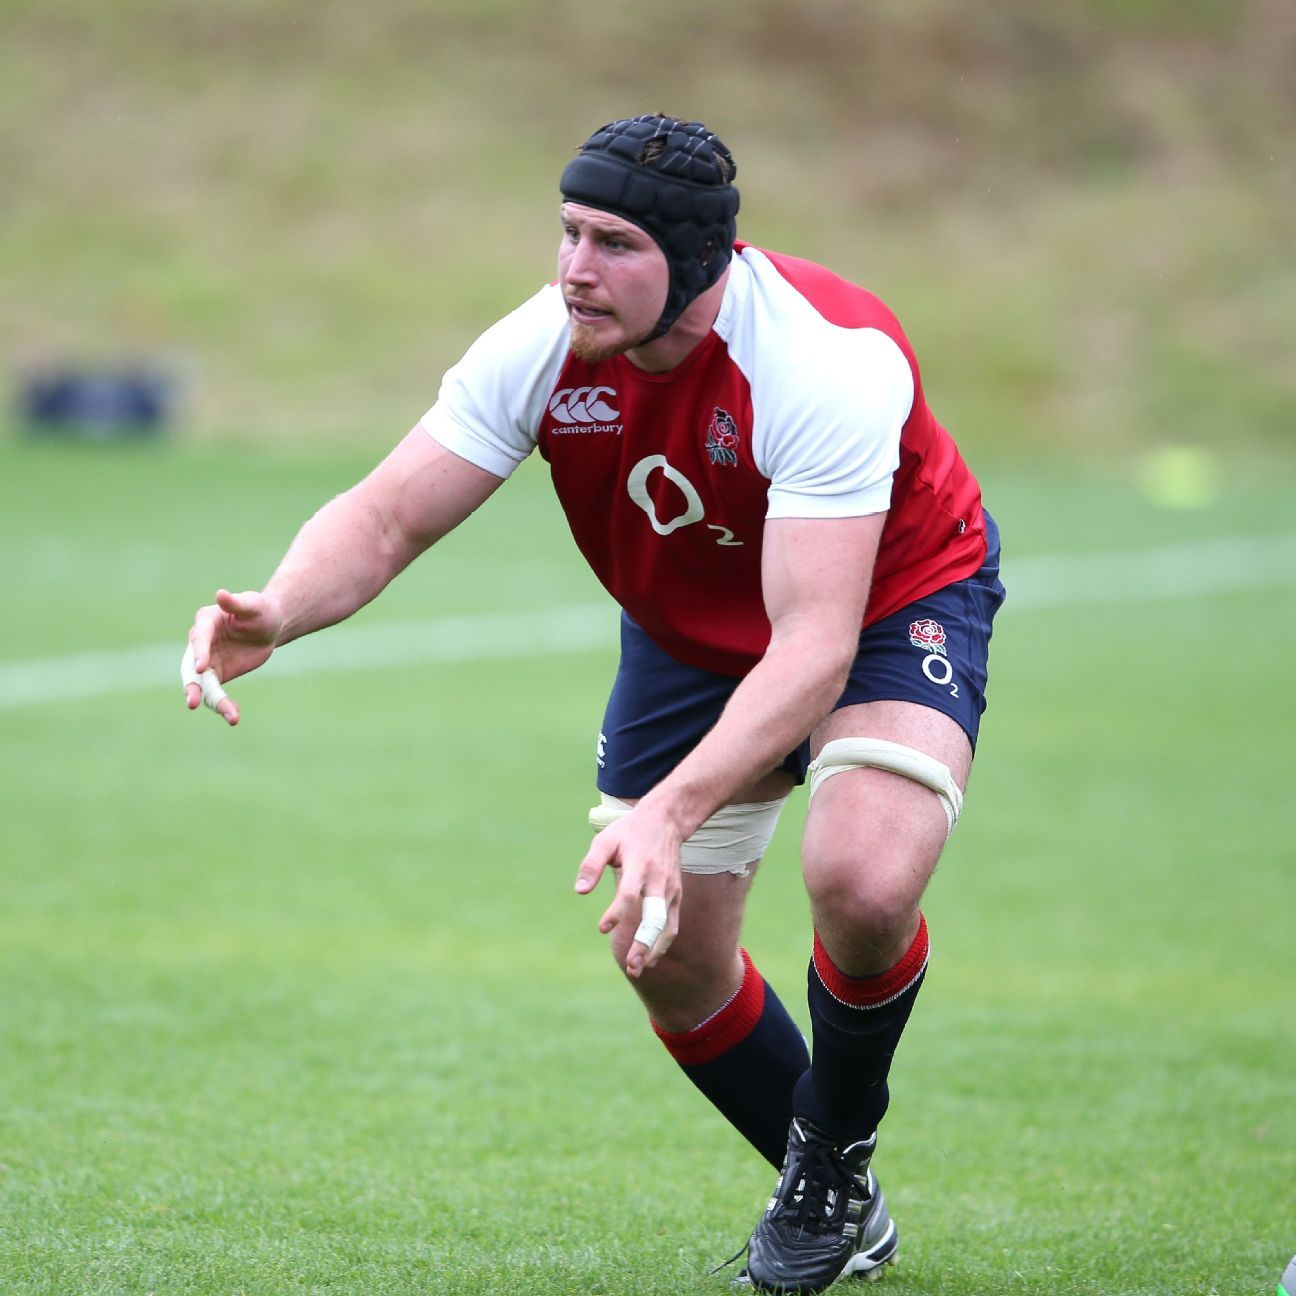 Ben Morgan's Recovery: From 'chicken Leg' To England Return